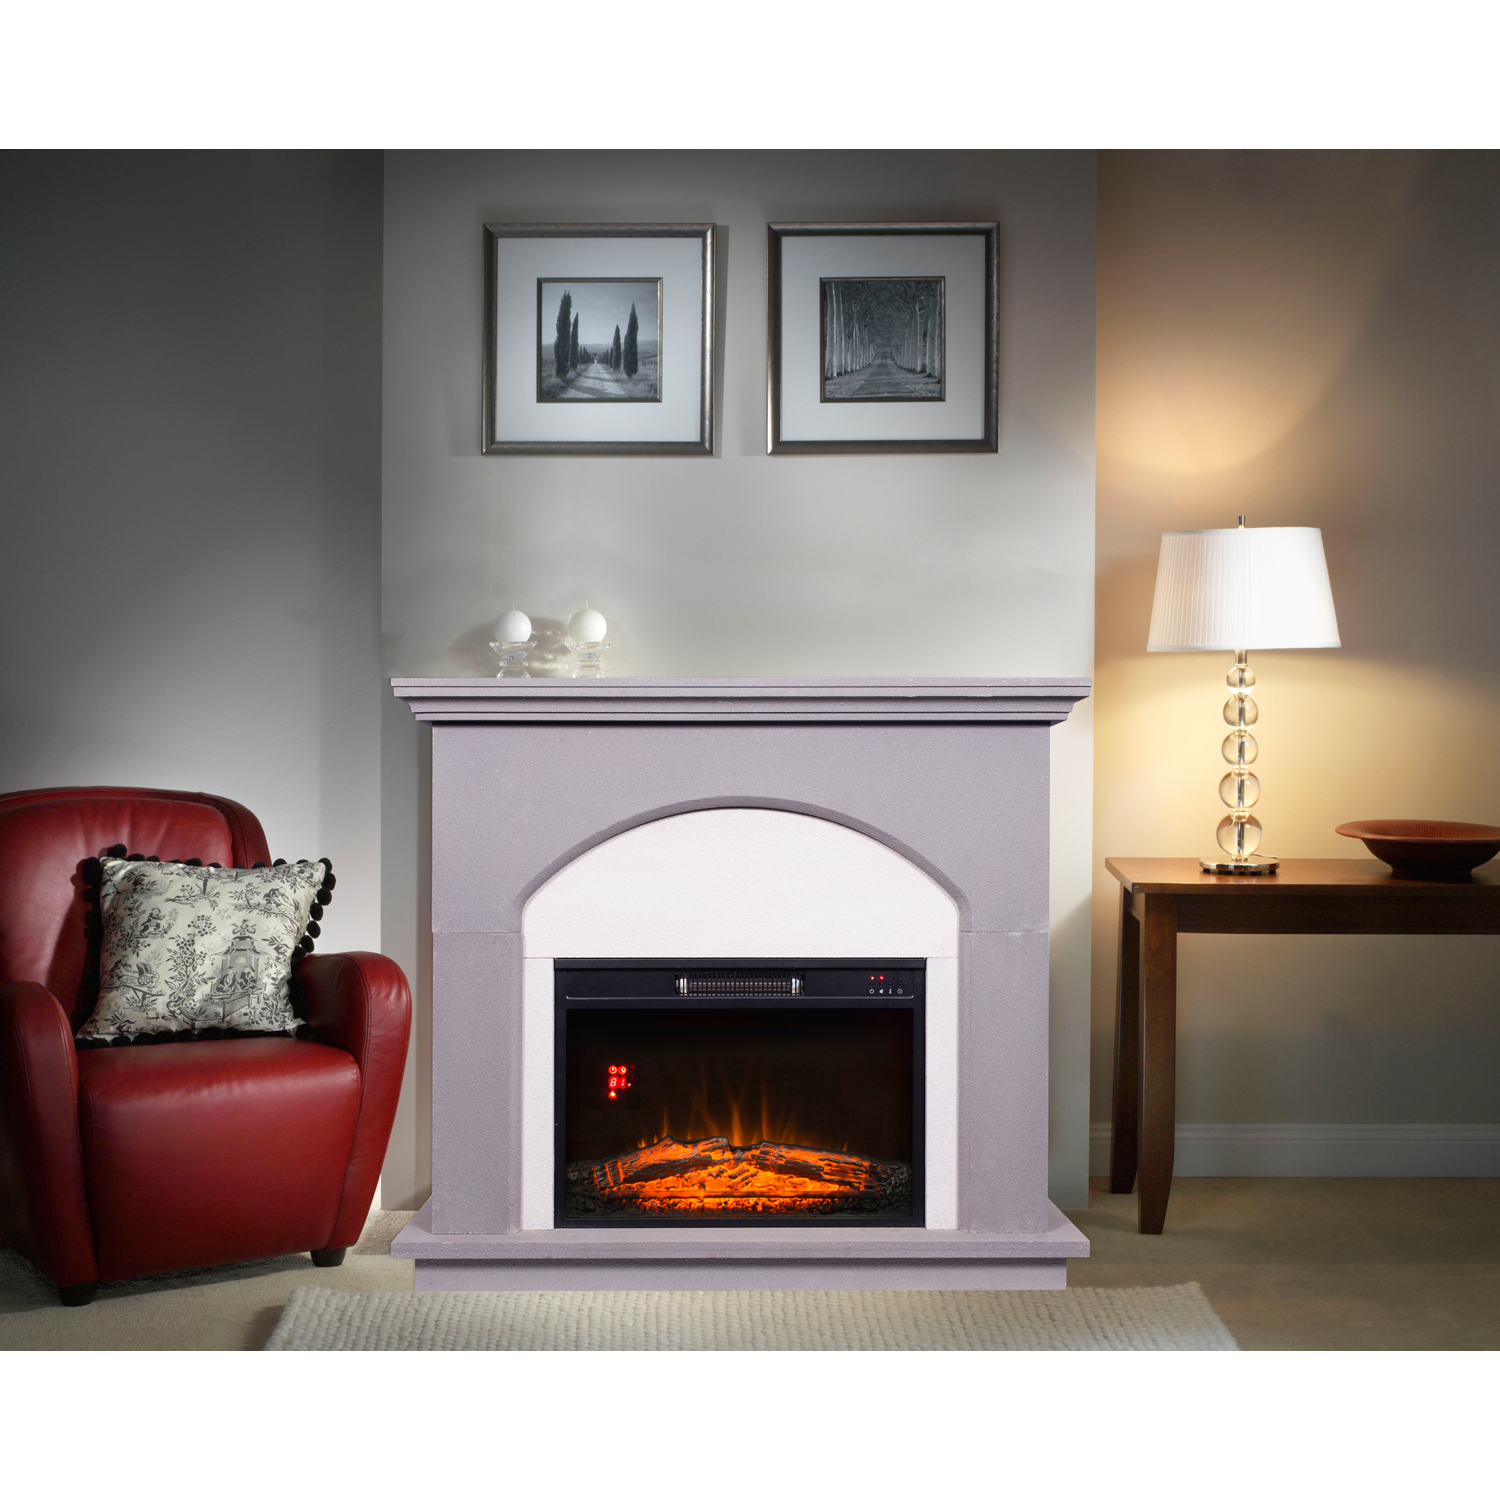 Decor Flame Electric Fireplace with 42inch Mantle